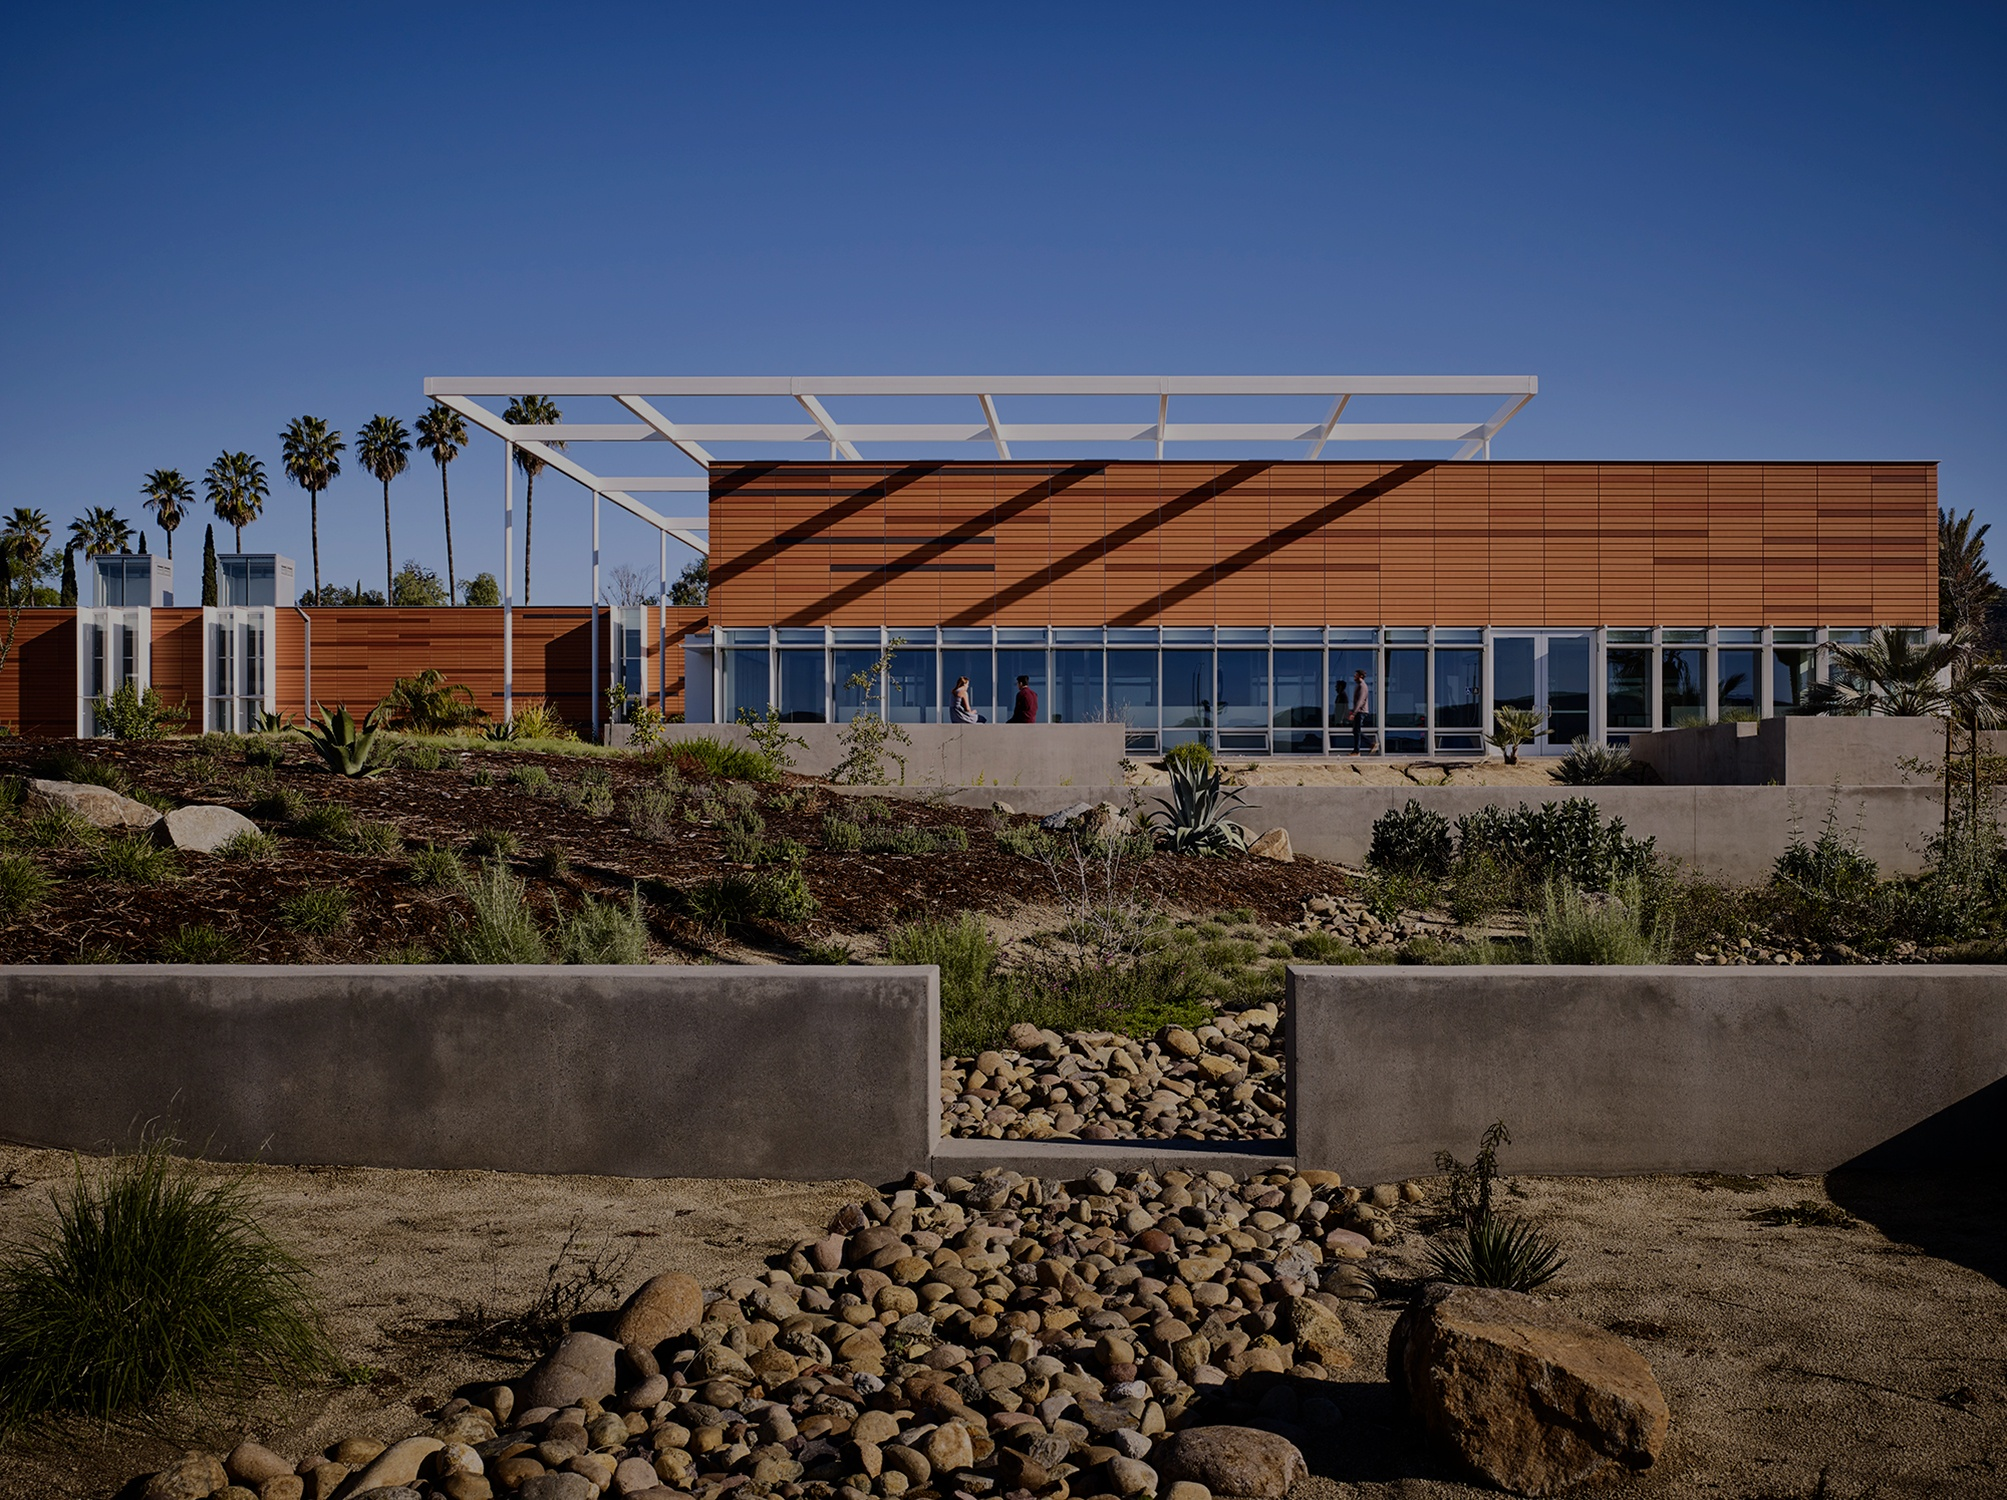 Palomar College Maintenance and Operations Complex